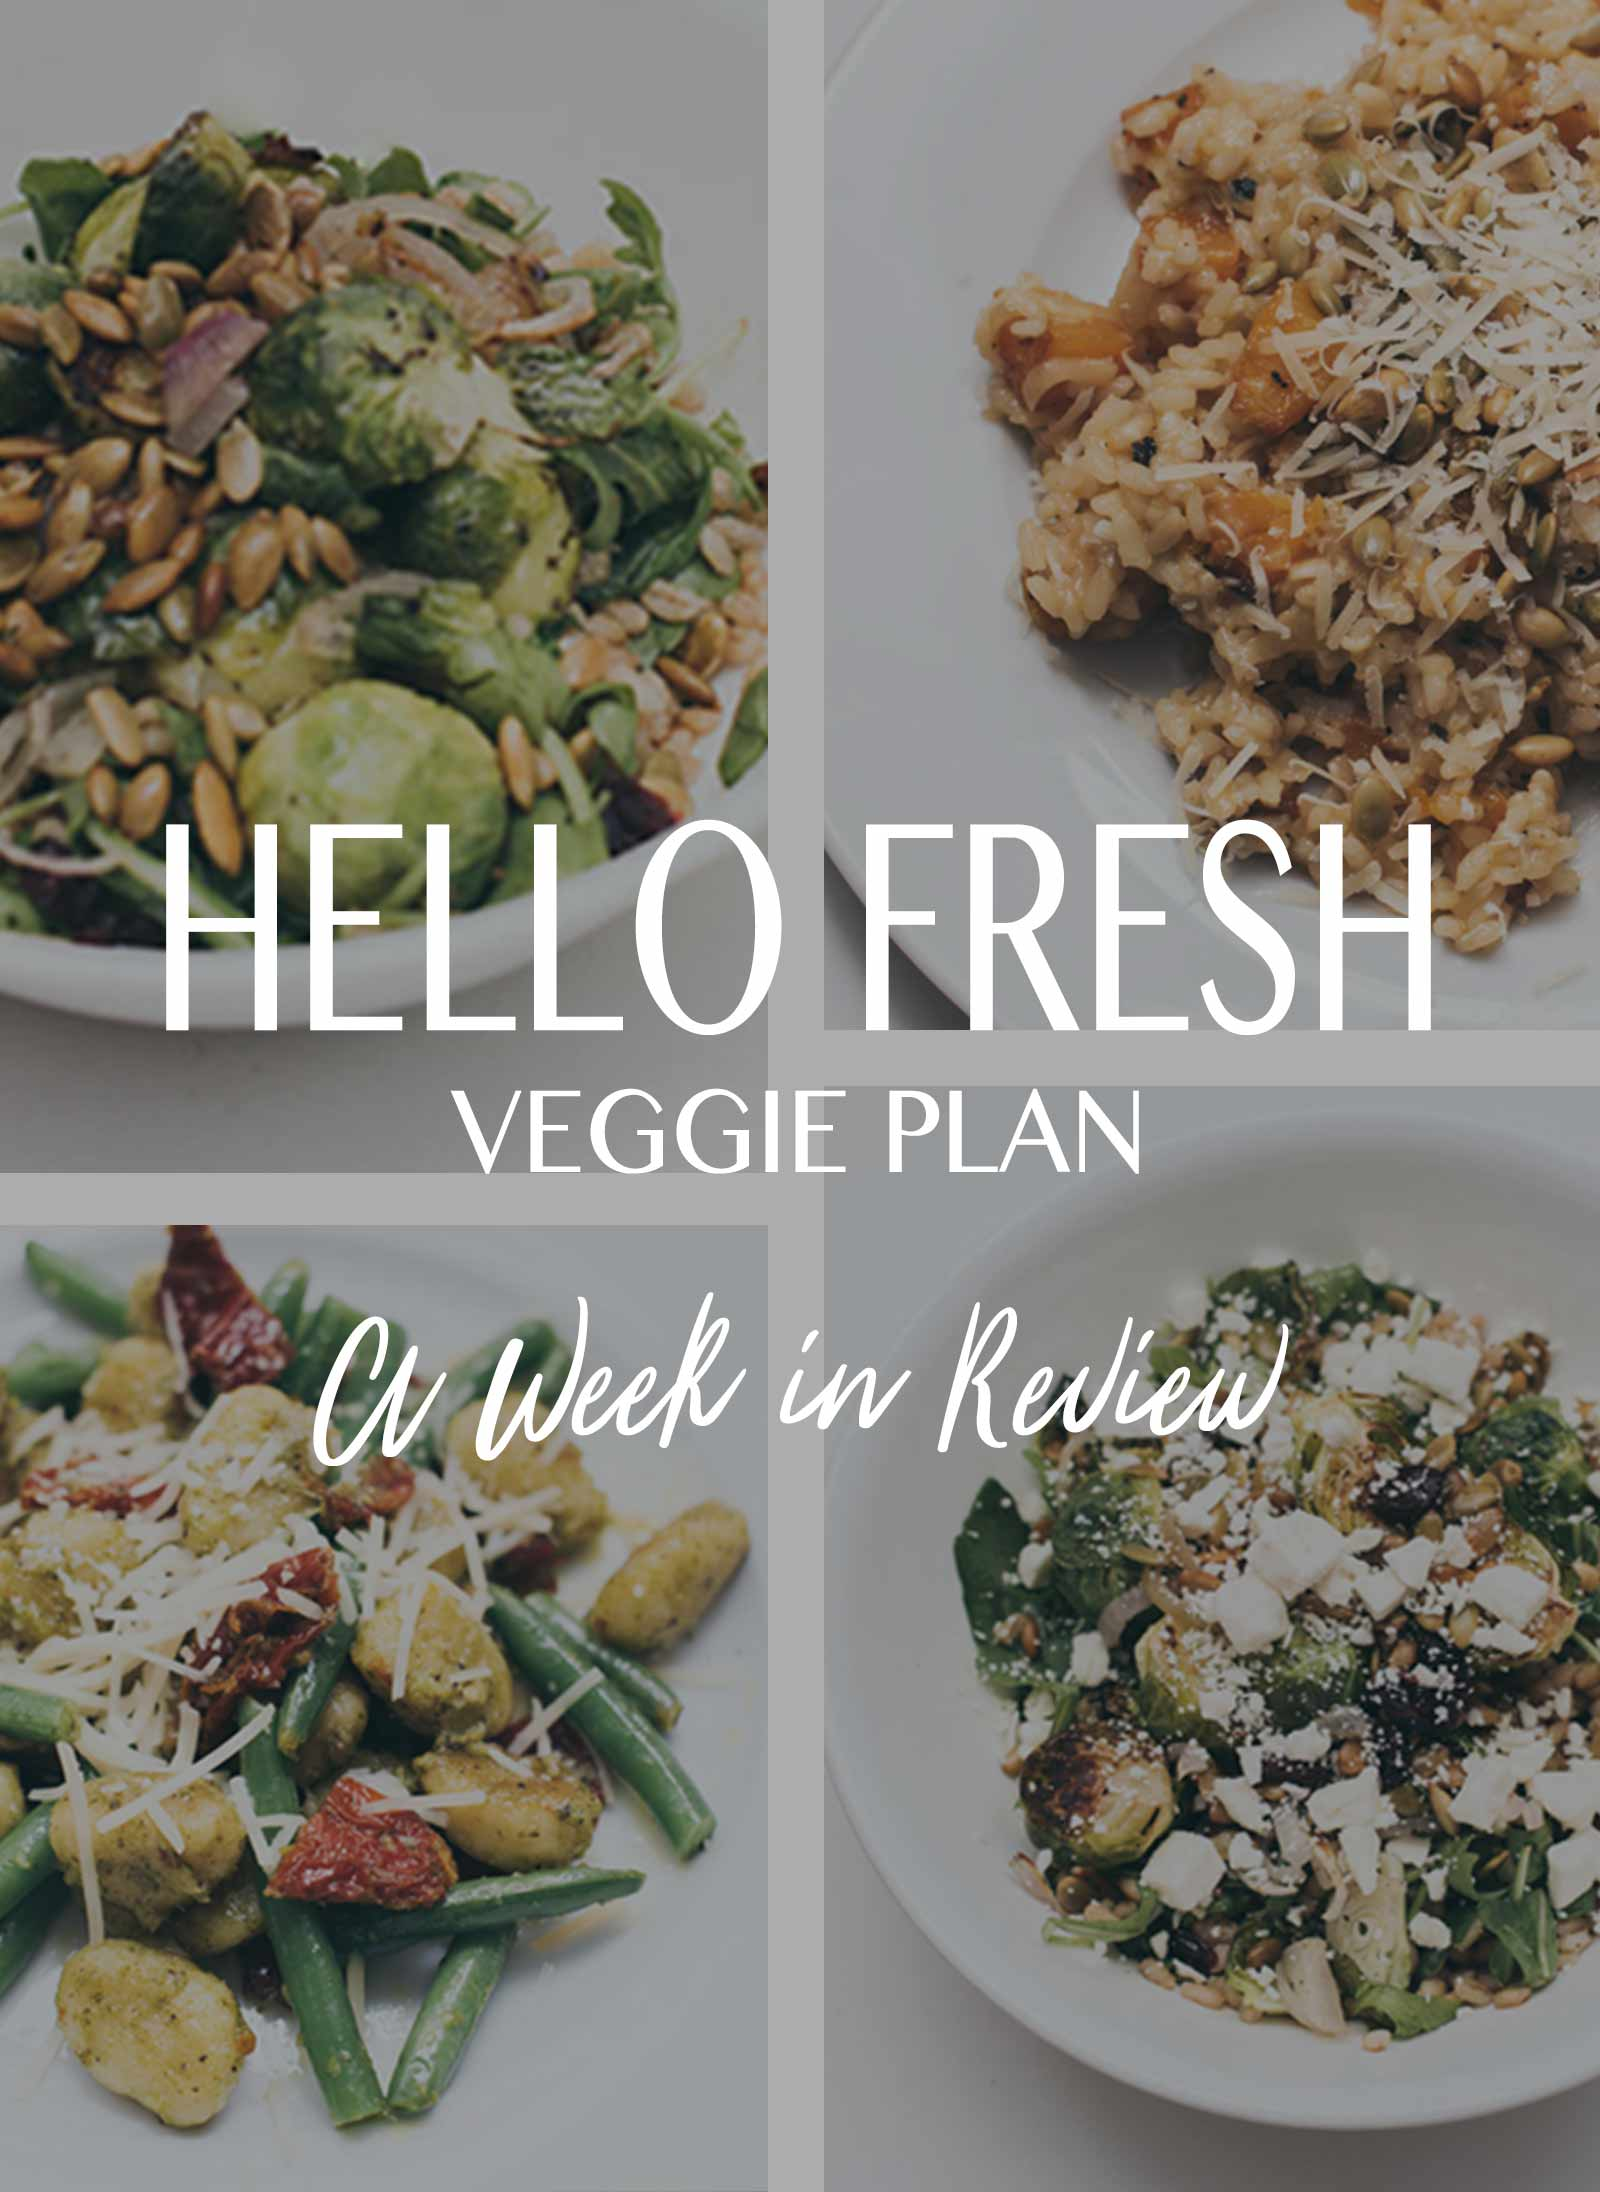 Buy Hellofresh Meal Kit Delivery Service  Financing No Credit